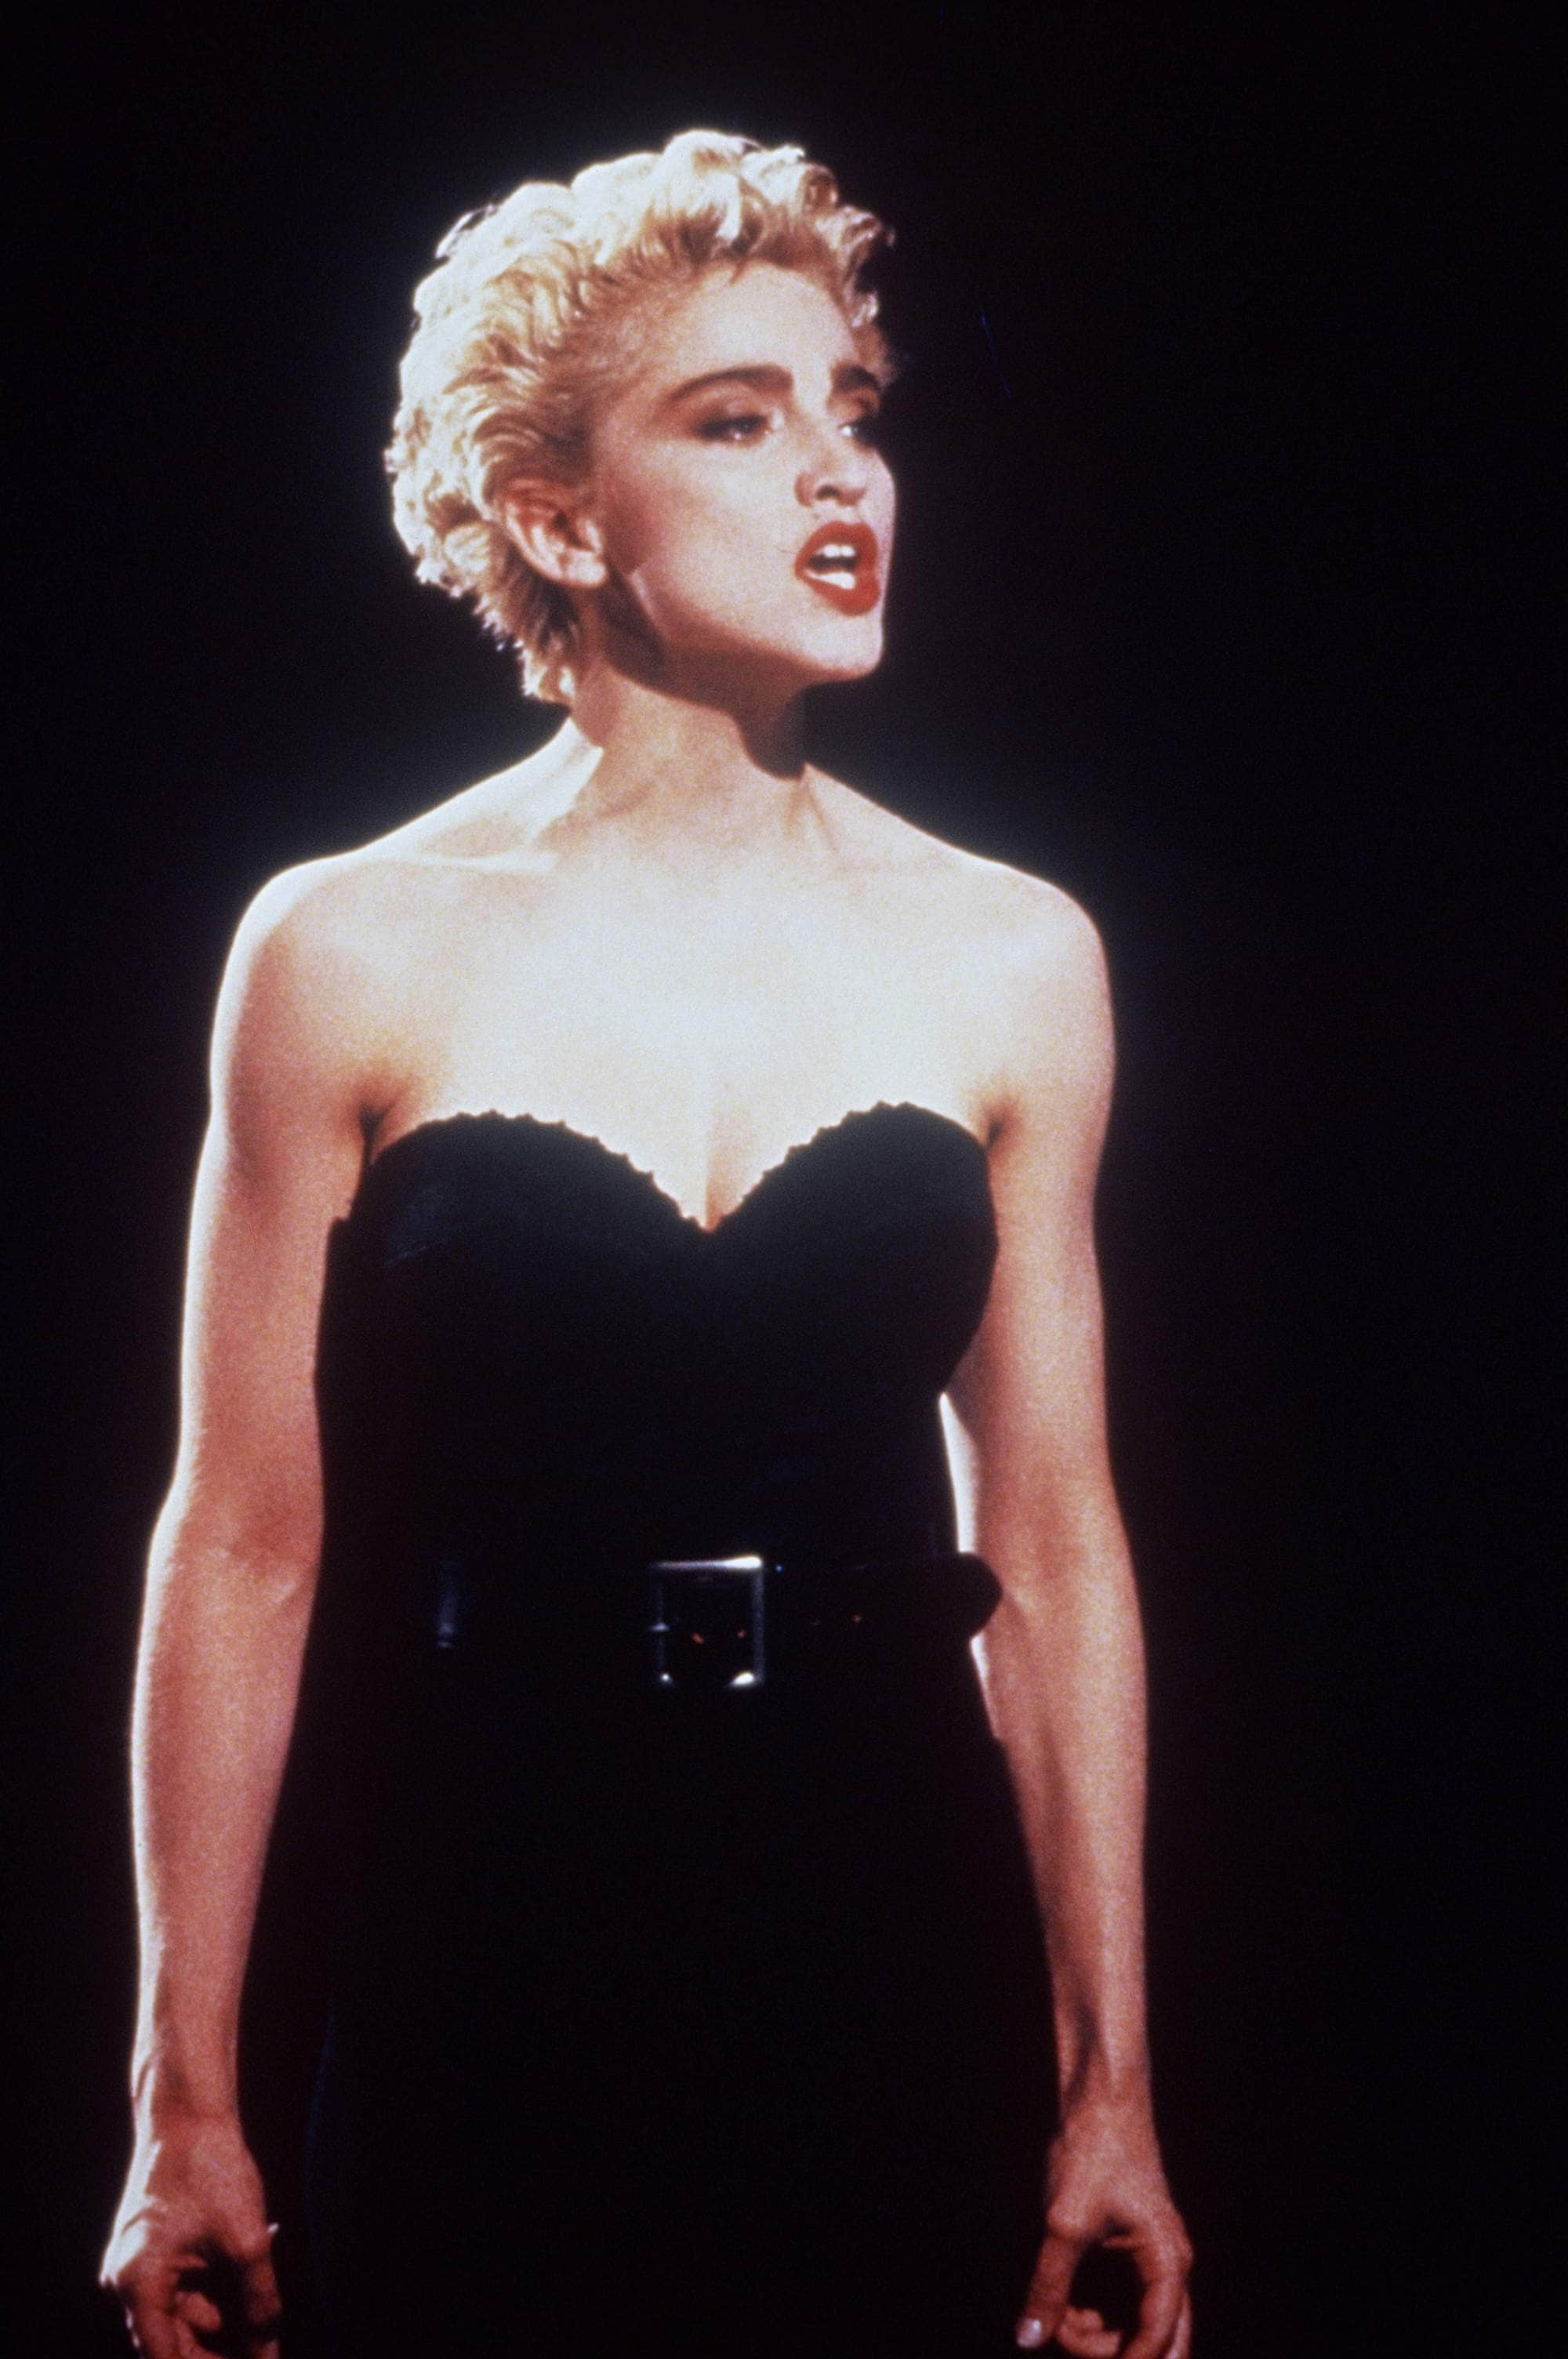 Madonna in 1988 with a Marilyn Monroe inspired blonde curly perm hairstyle.